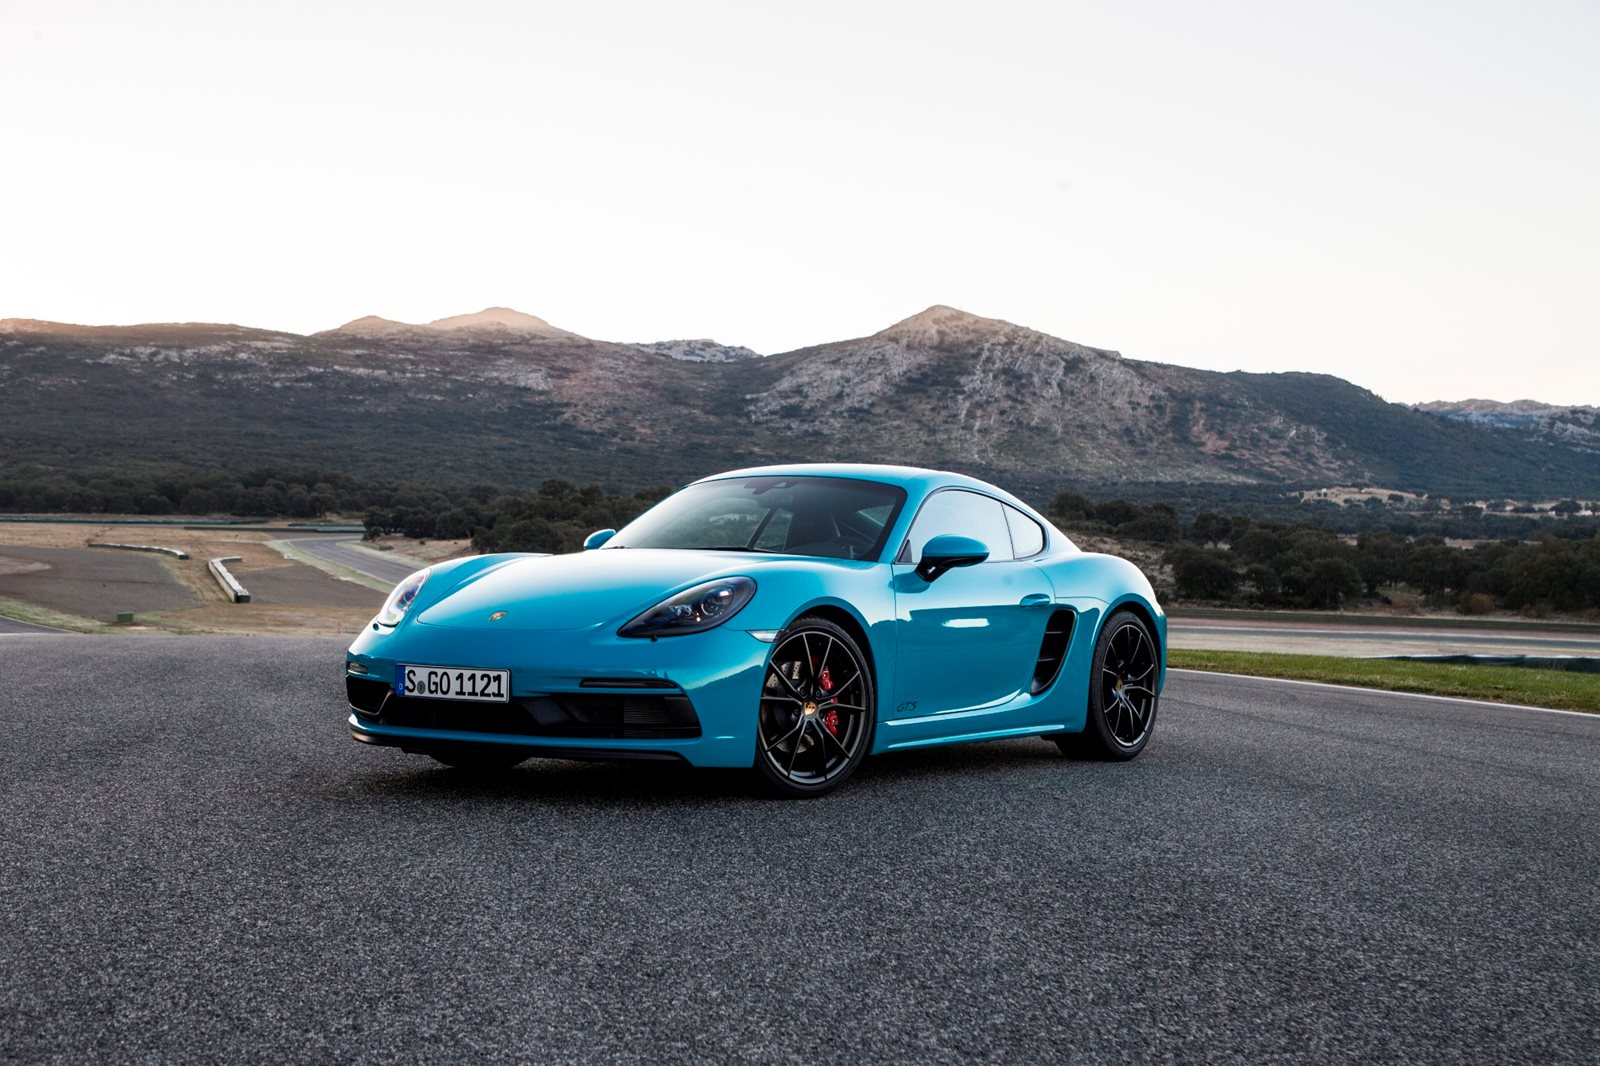 Honda Supercar Price >> 2018 Porsche 718 Cayman Coupe Review, Trims, Specs and Price - CarBuzz